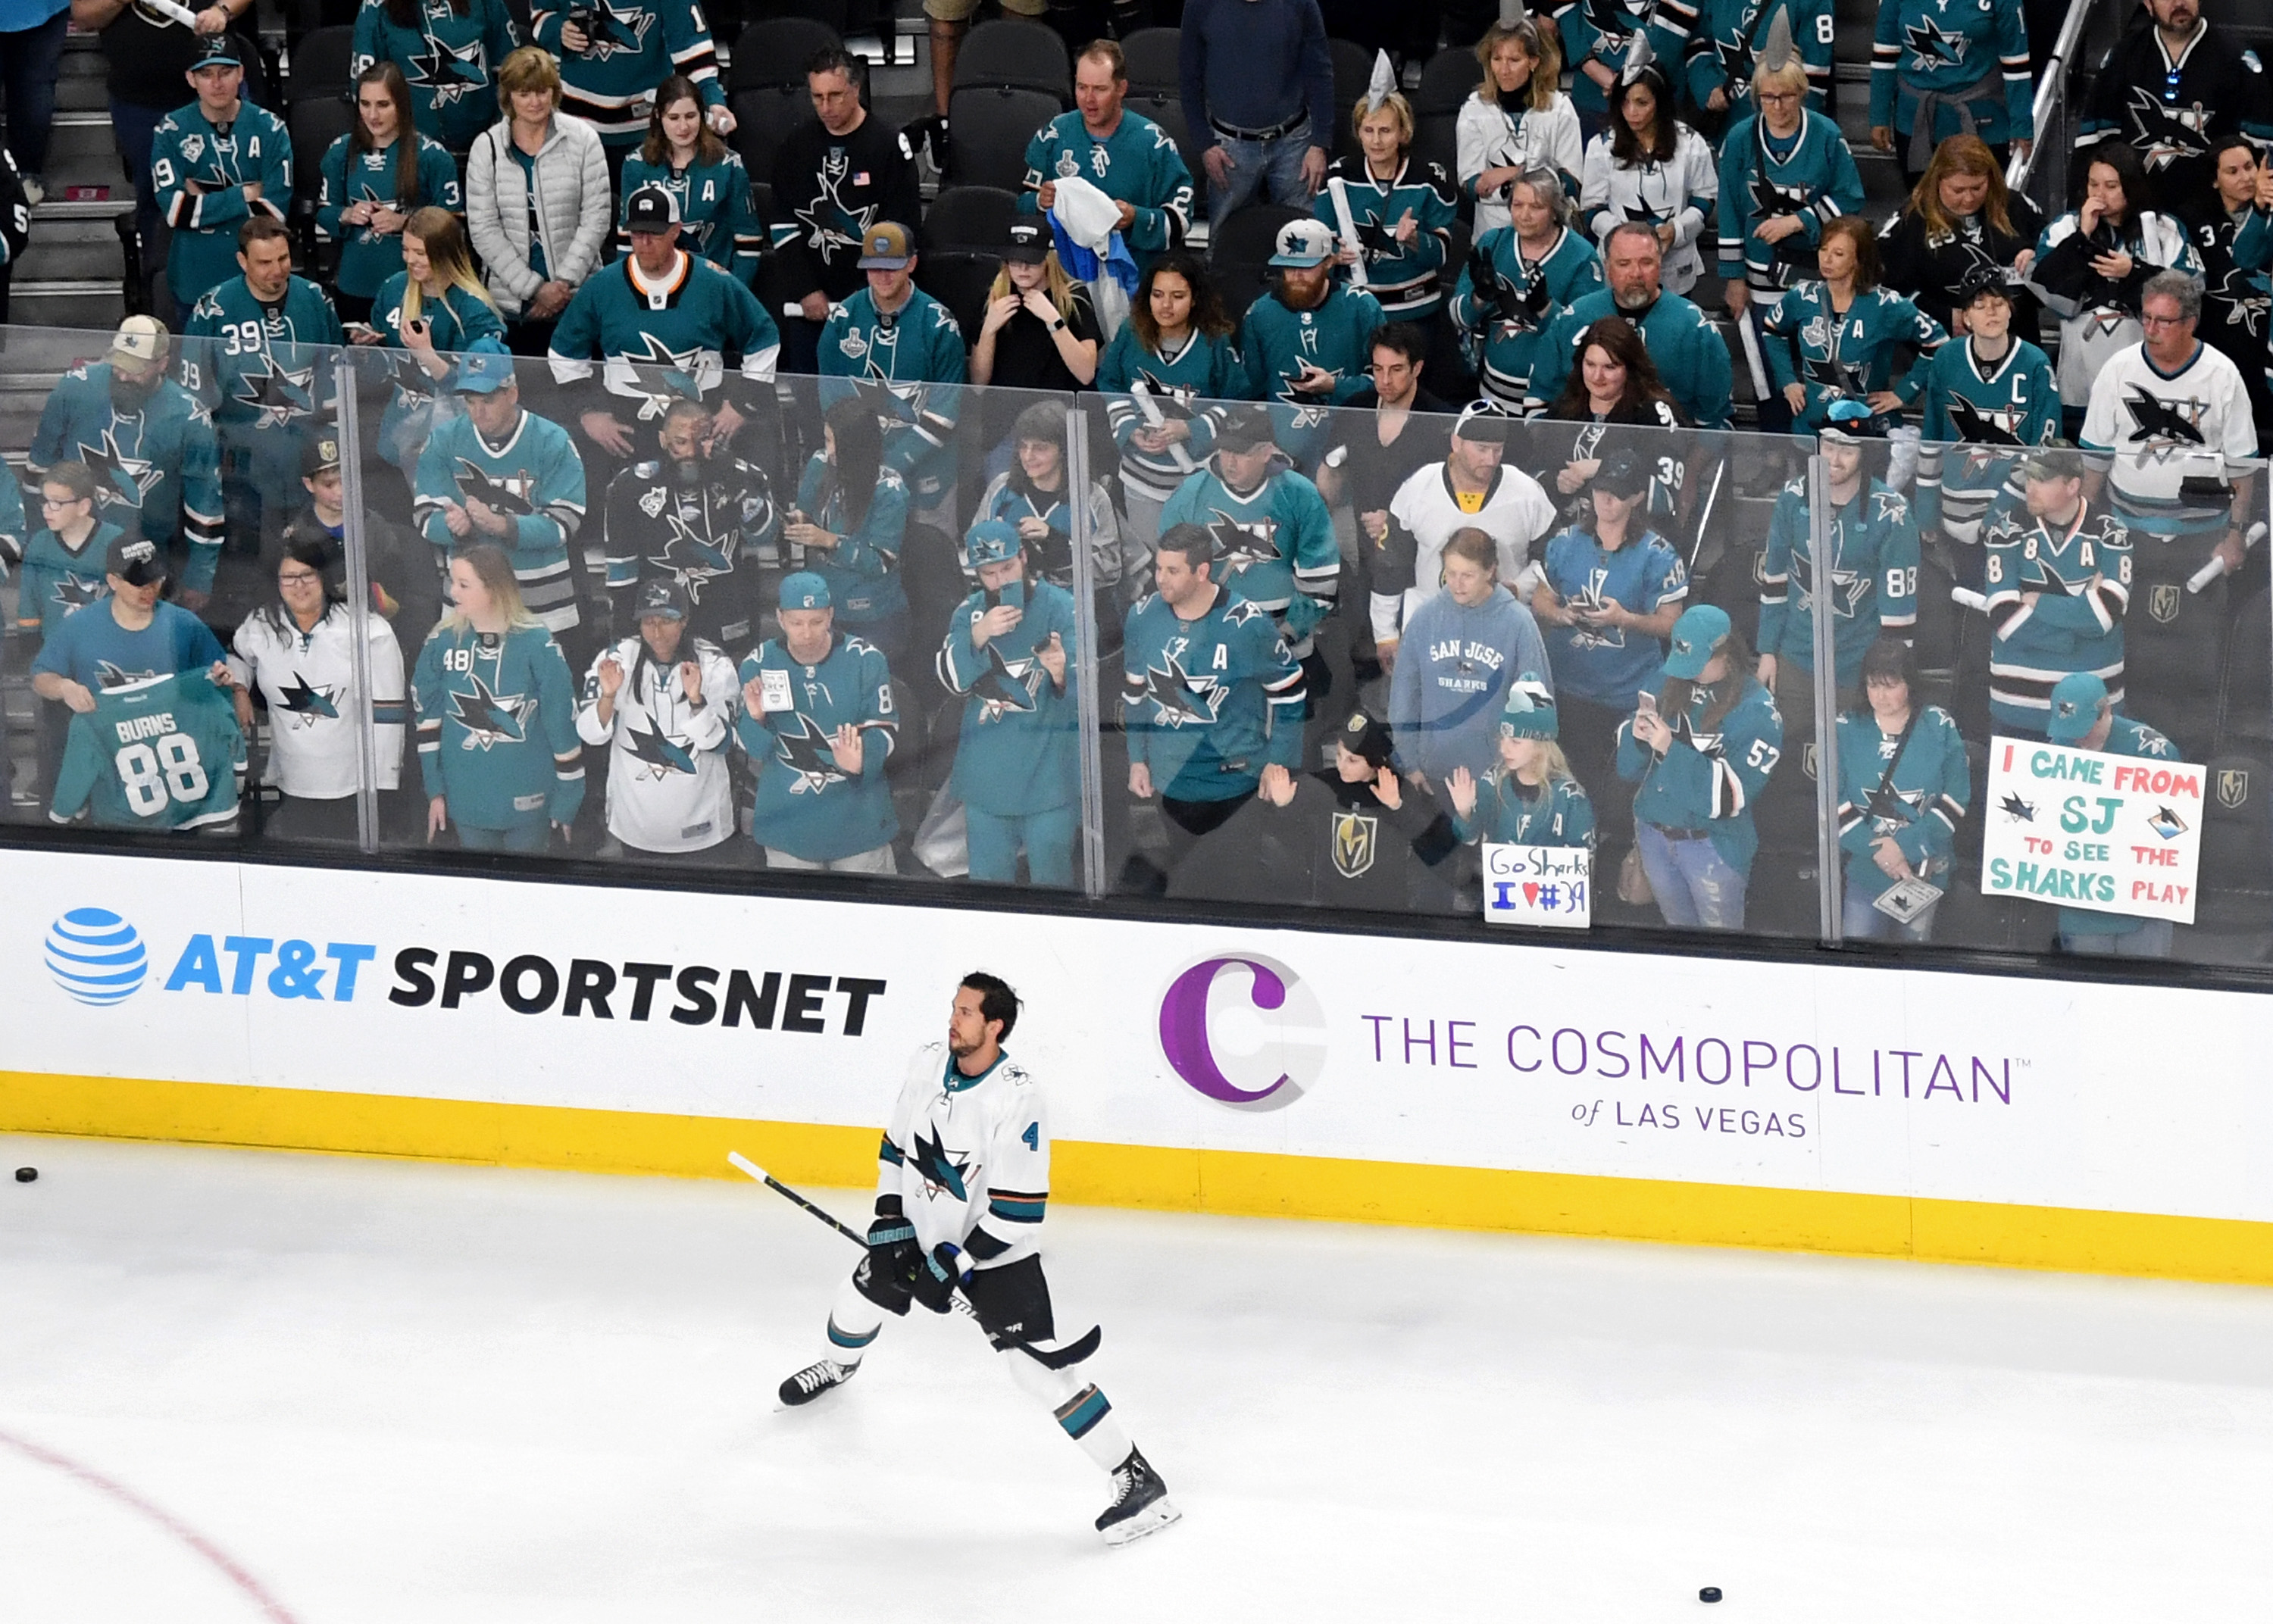 LAS VEGAS, NV - MARCH 31: San Jose Sharks fans watch the team warm up before a game against the Vegas Golden Knights at T-Mobile Arena on March 31, 2018 in Las Vegas, Nevada. The Golden Knights won 3-2 and clinched the Pacific Division title.